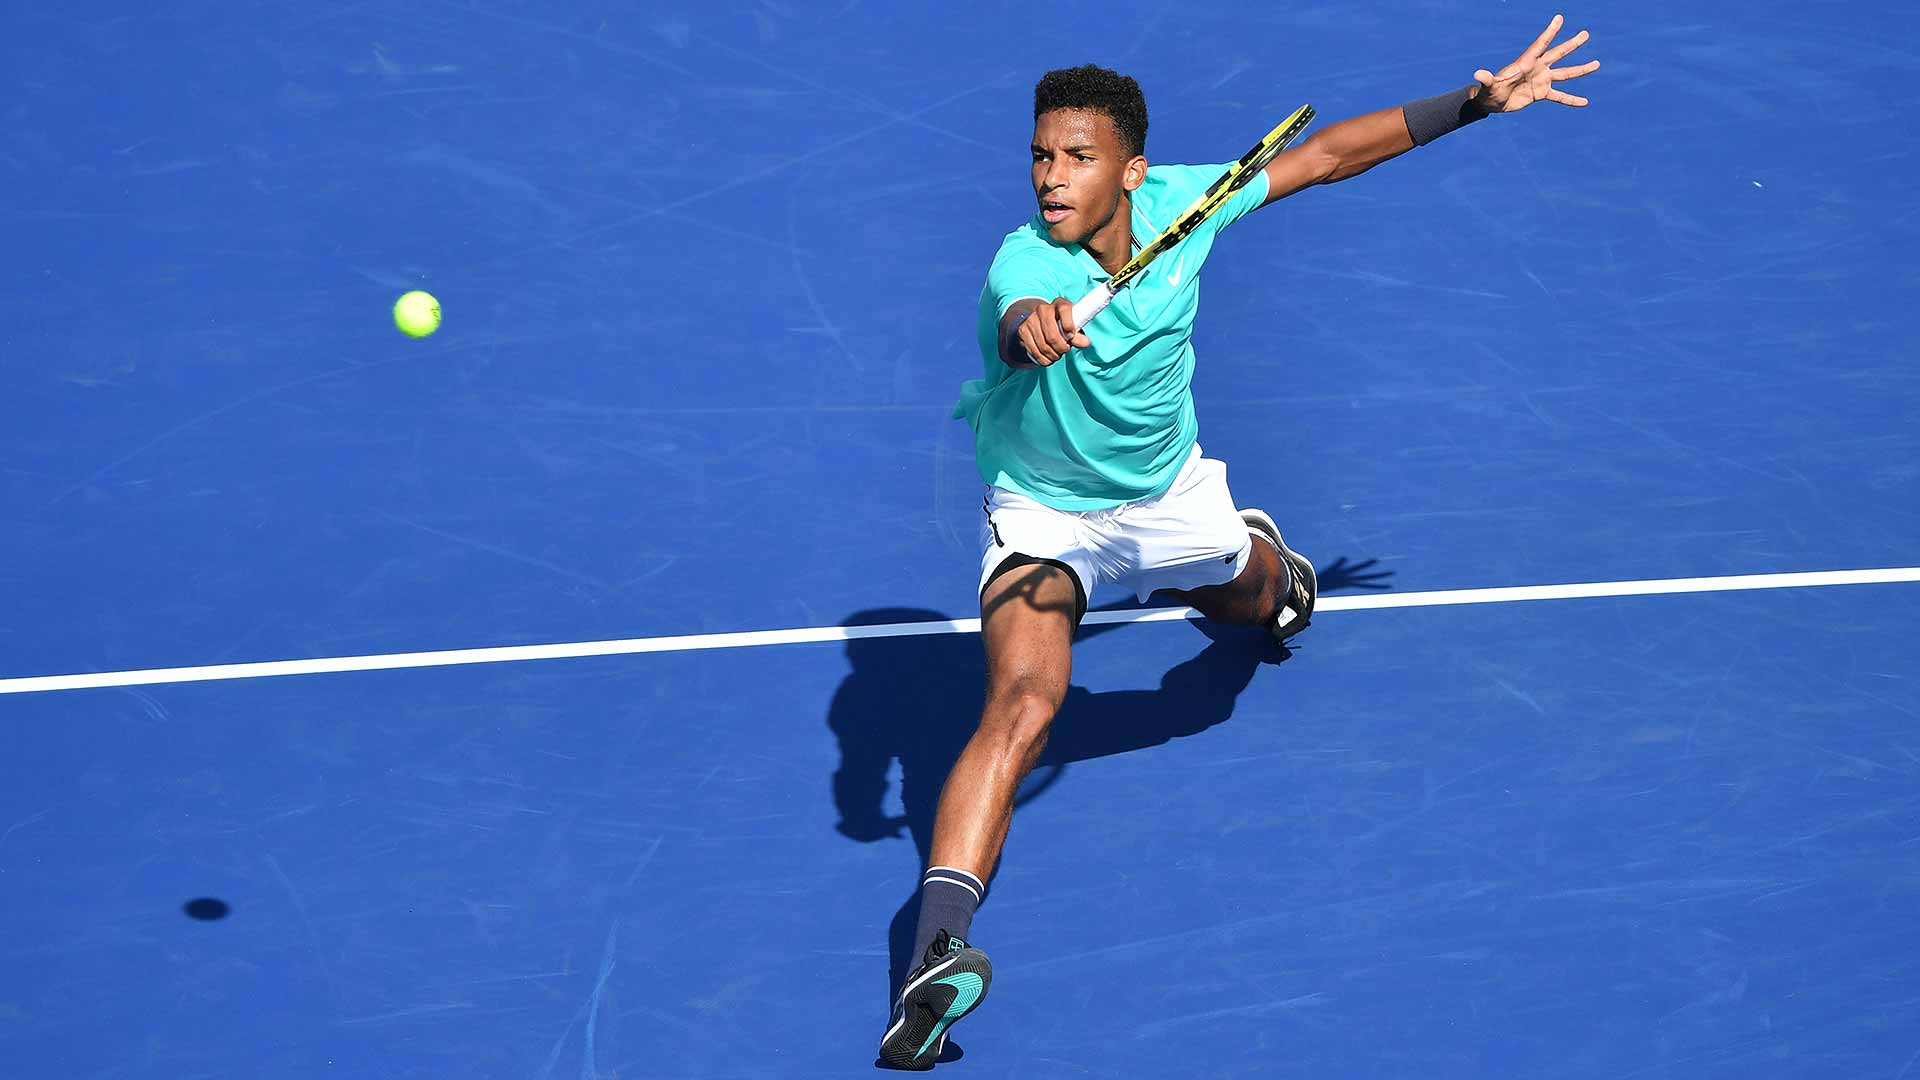 Felix Auger-Aliassime is currently in 11th place in the ATP Race To London.